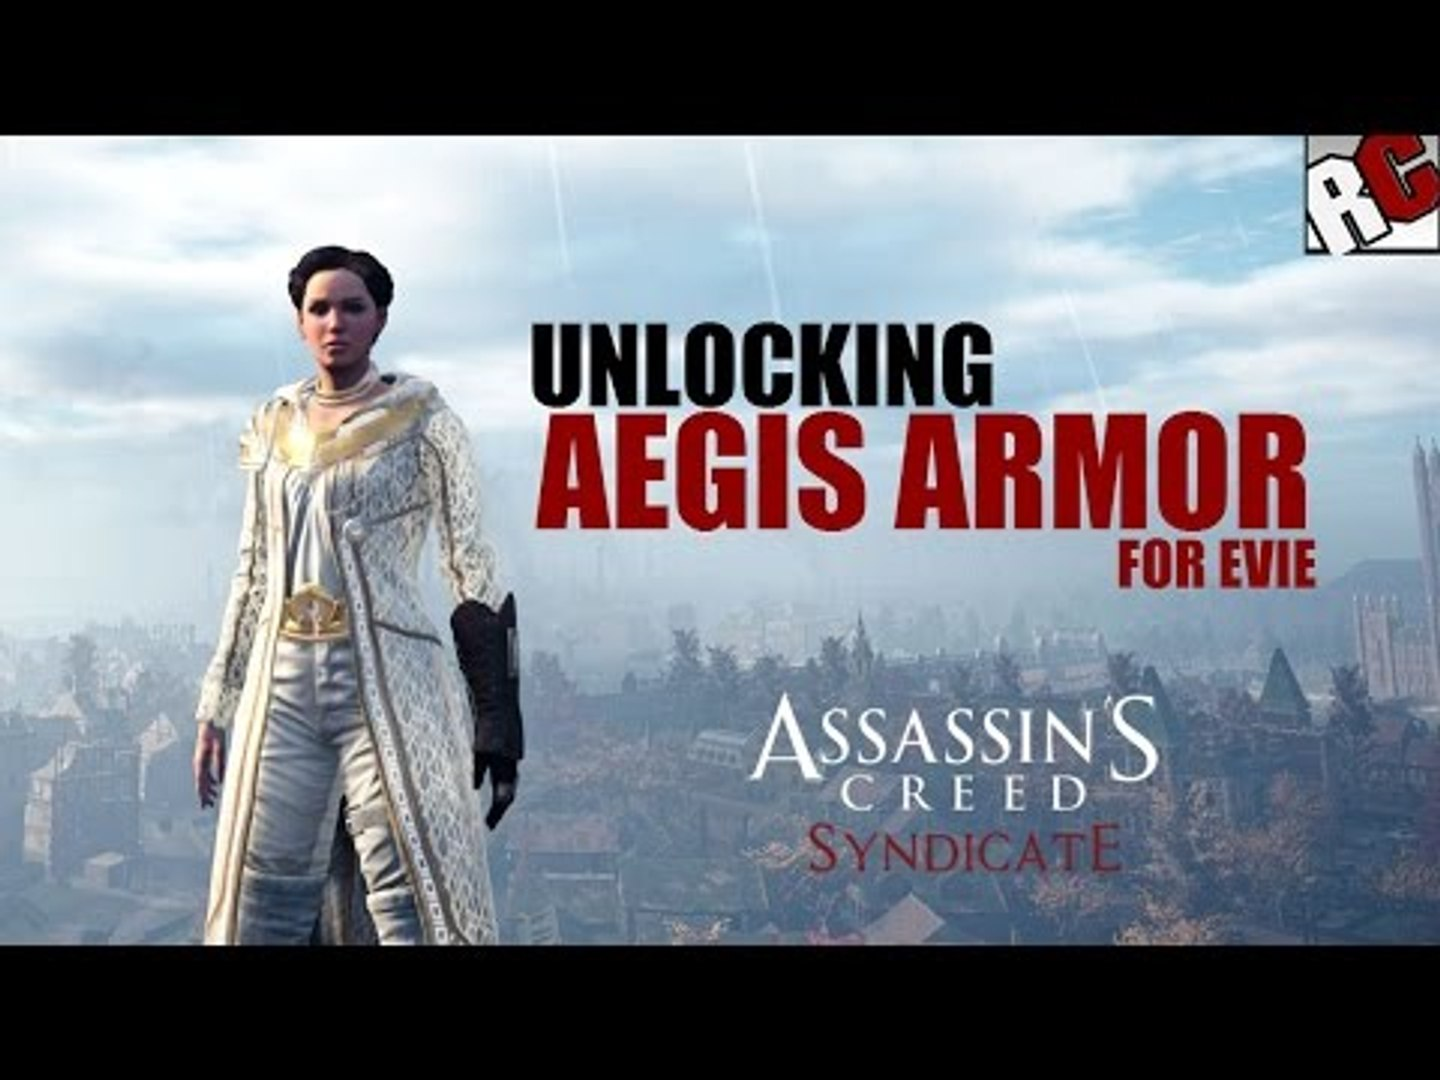 Assassin S Creed Syndicate Outfit Unlocking Aegis Armor For Evie Aegis Armor And Gameplay Video Dailymotion